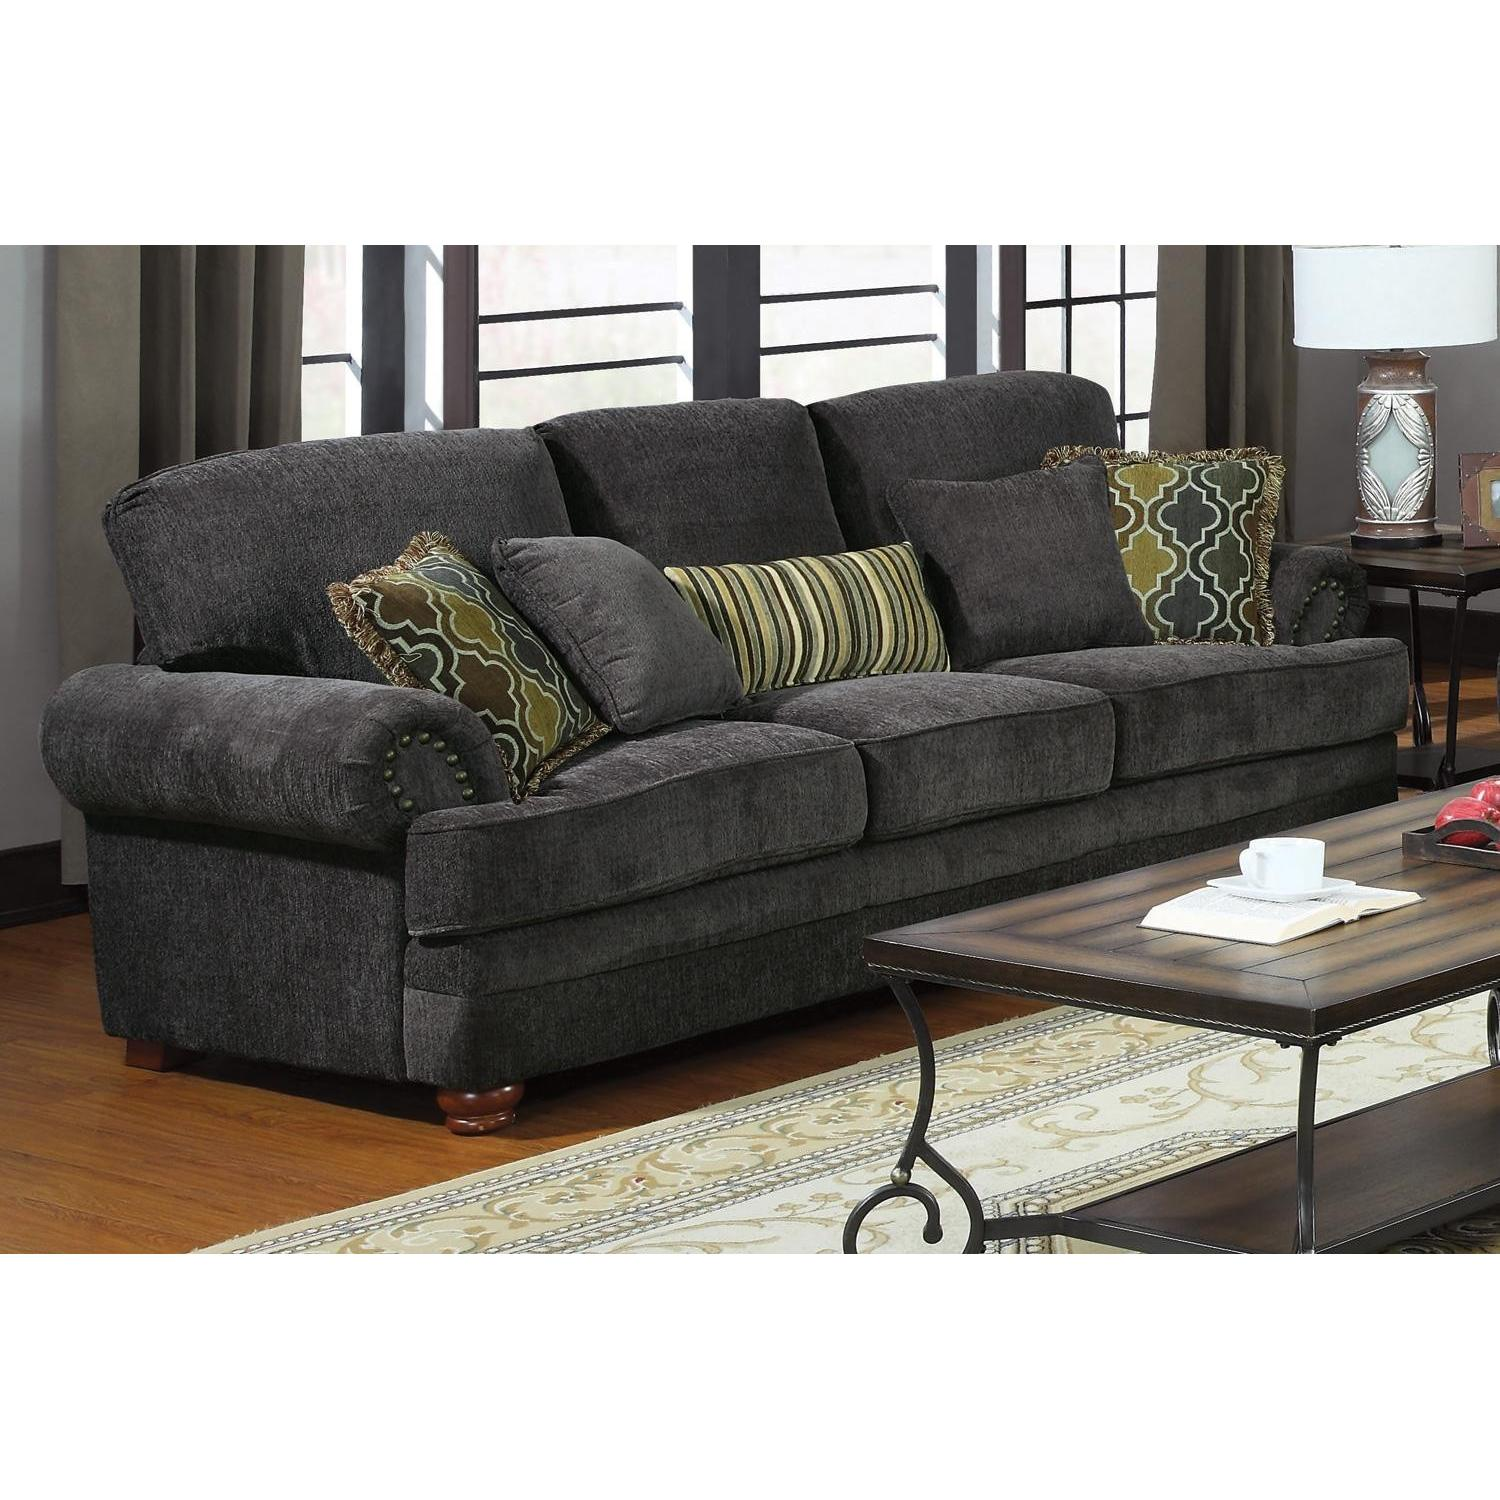 Coaster Sofa in Grey Chenille Fabric & Pocket Coil Seats